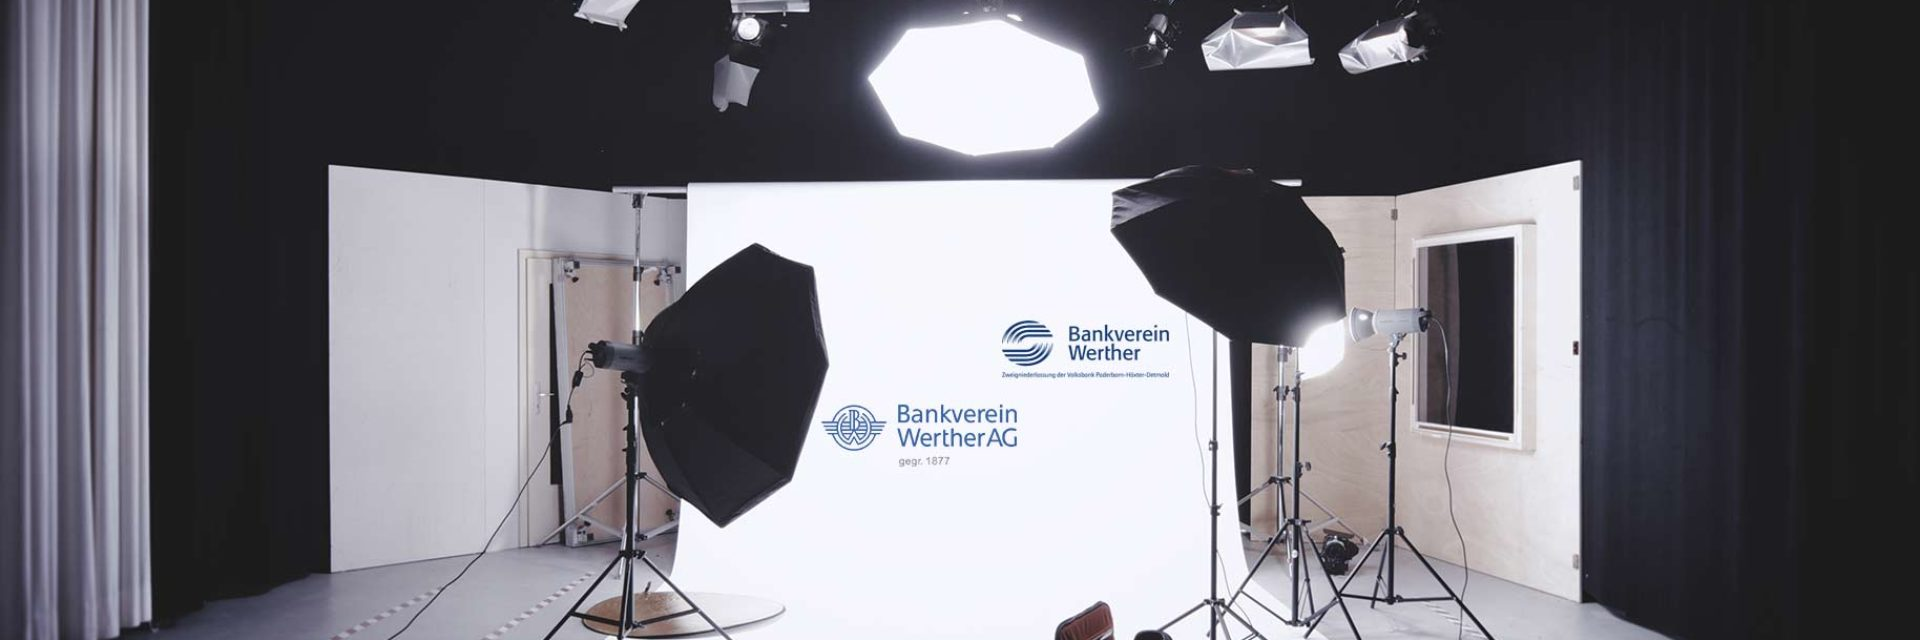 Markenintegration: Bankverein Werther